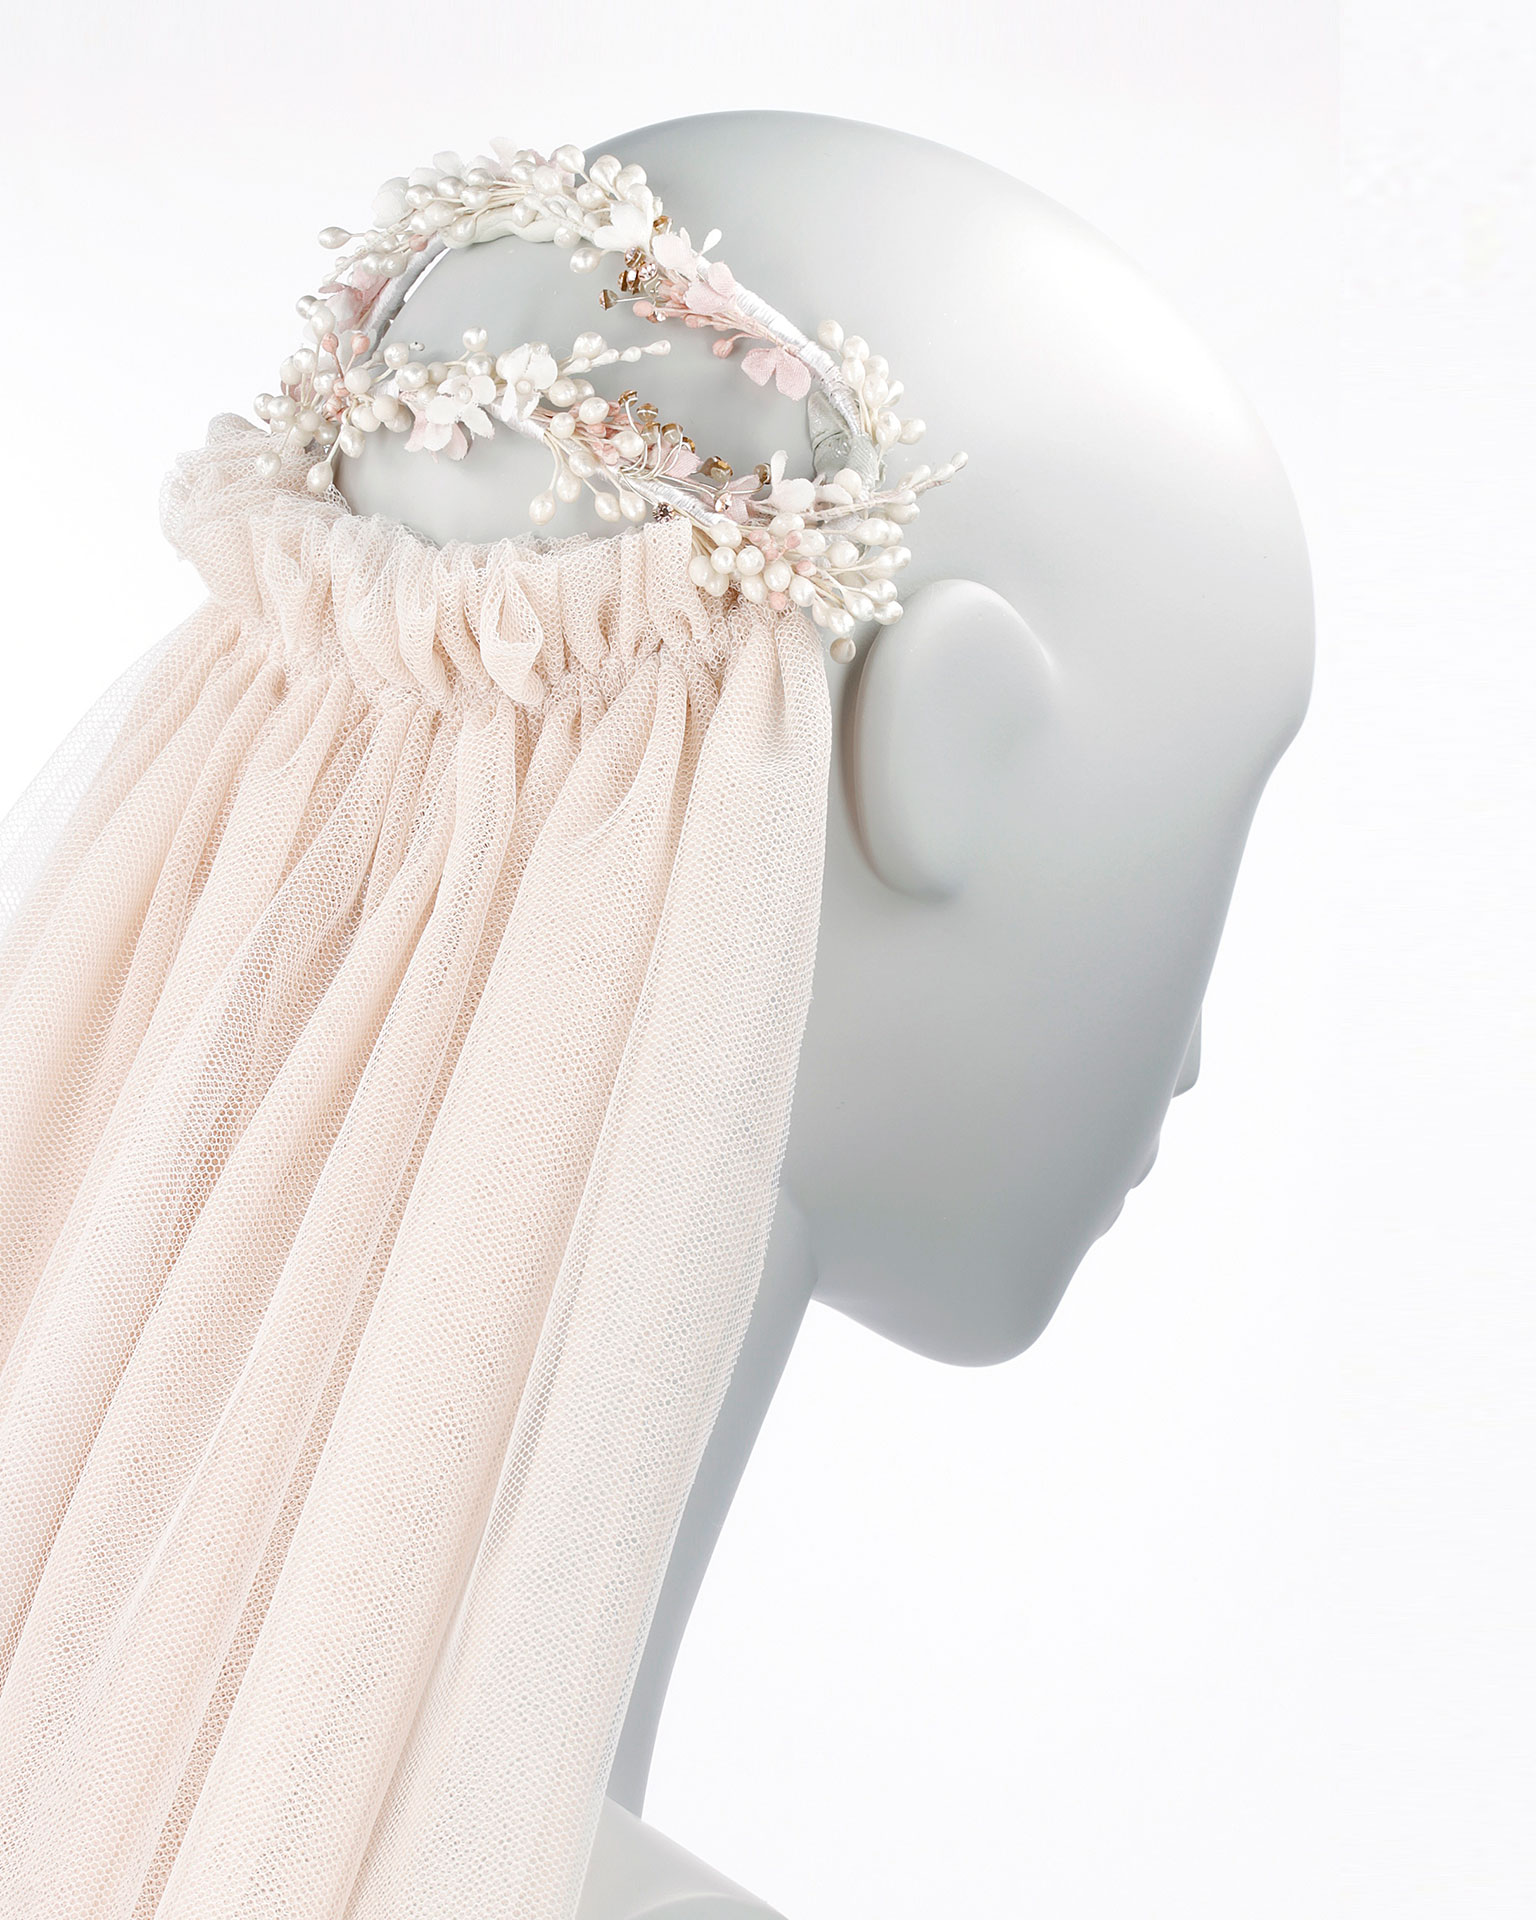 Bridal headpiece with seed beads, flowers and beadwork detail. With tulle veil. Available in pink. 2019 MARTHA_BLANC Collection.